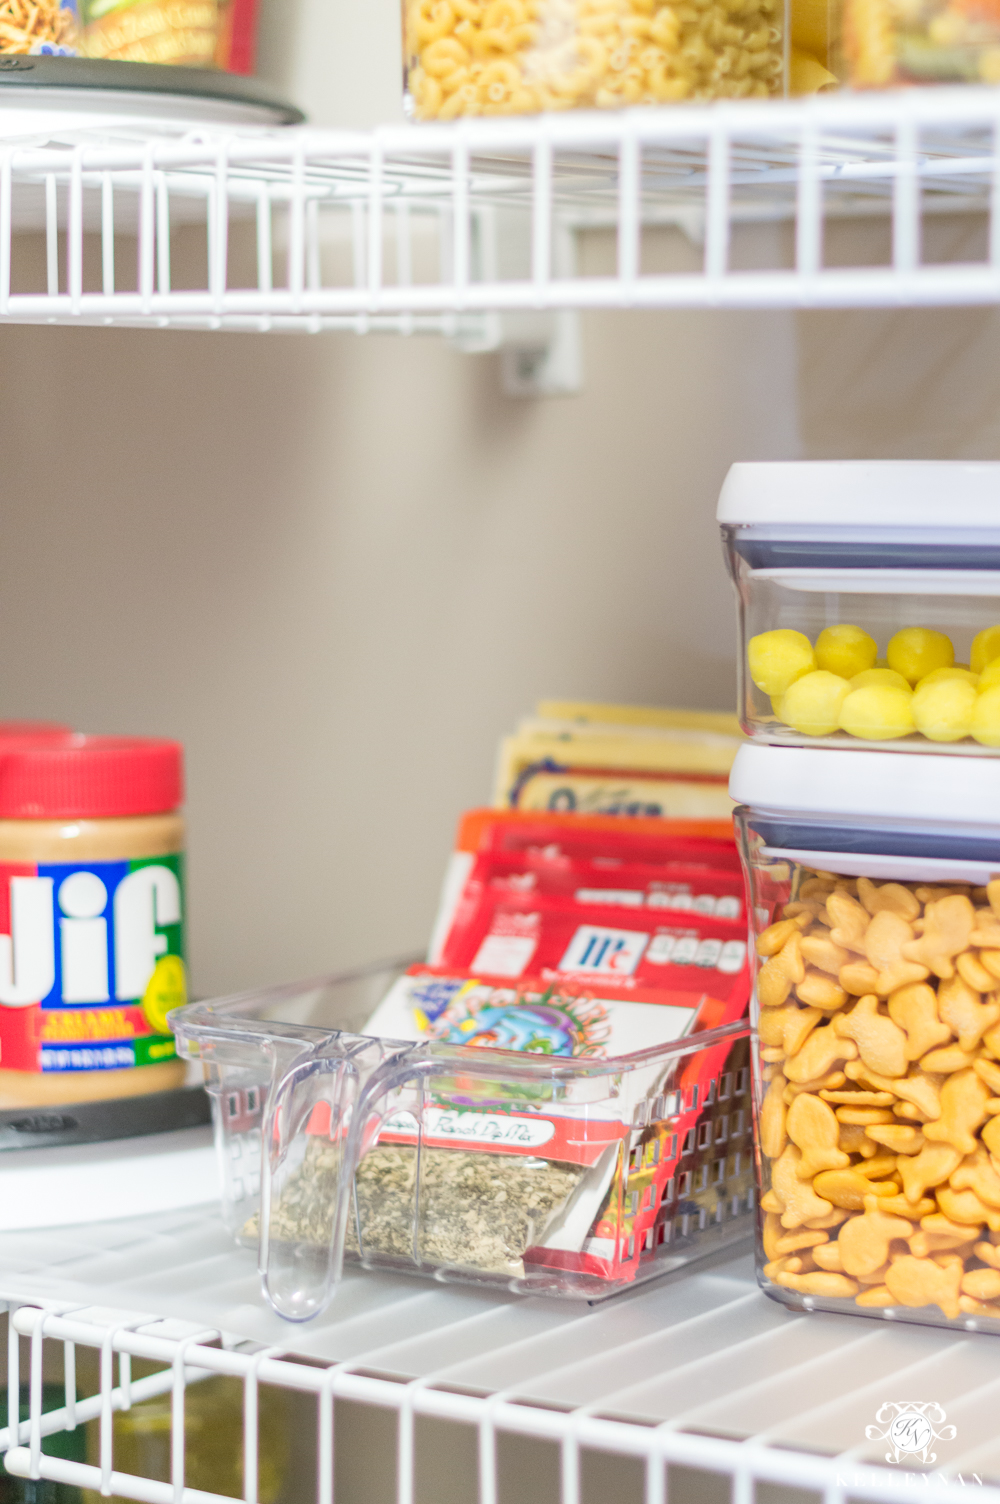 Pantry handle baskets for spice storage